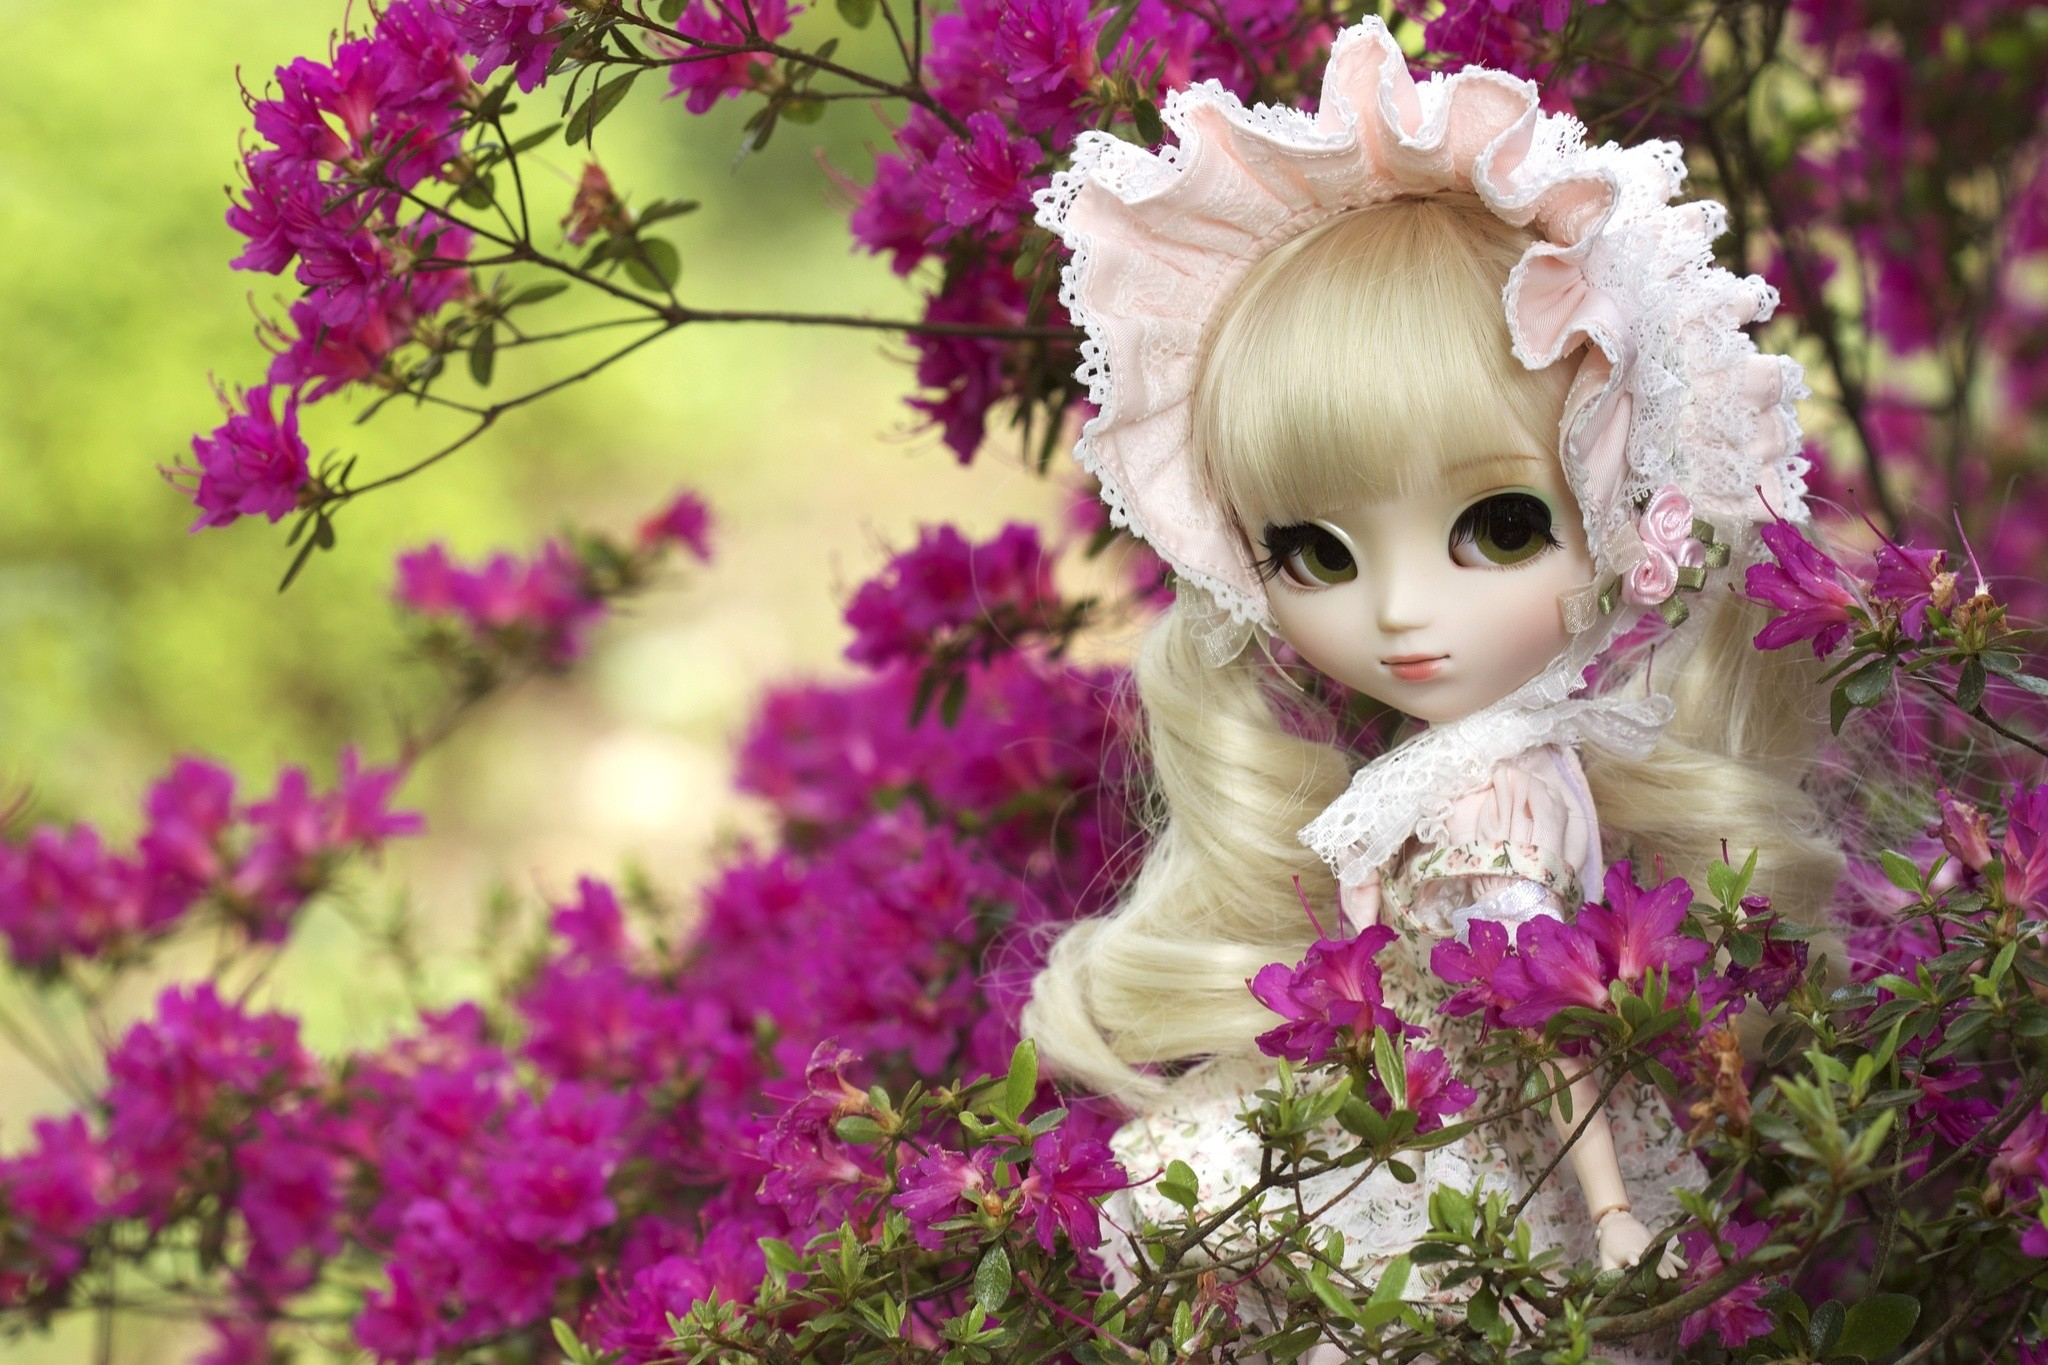 Very Cute Doll Wallpapers Doll Images Wallpapers Wallpapers)